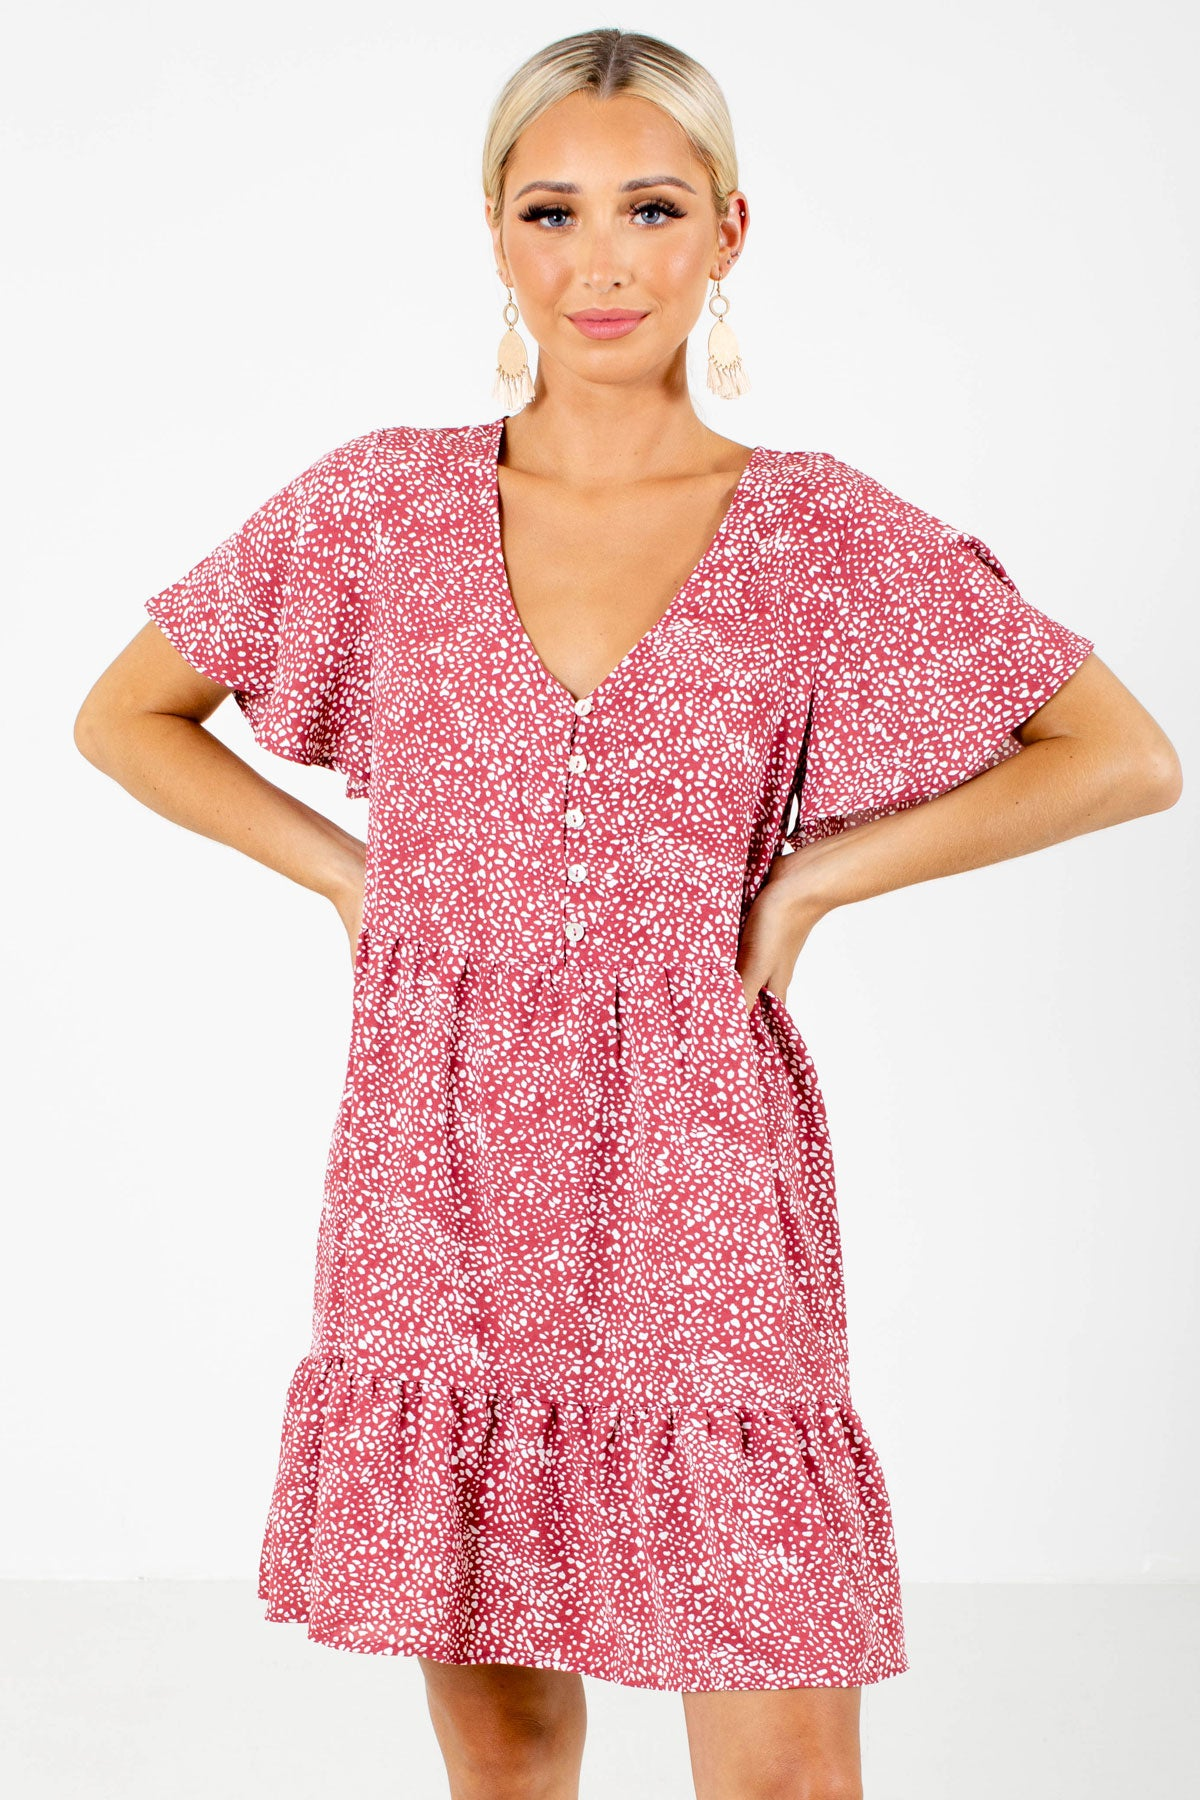 Pink Patterned Boutique Mini Dresses for Women